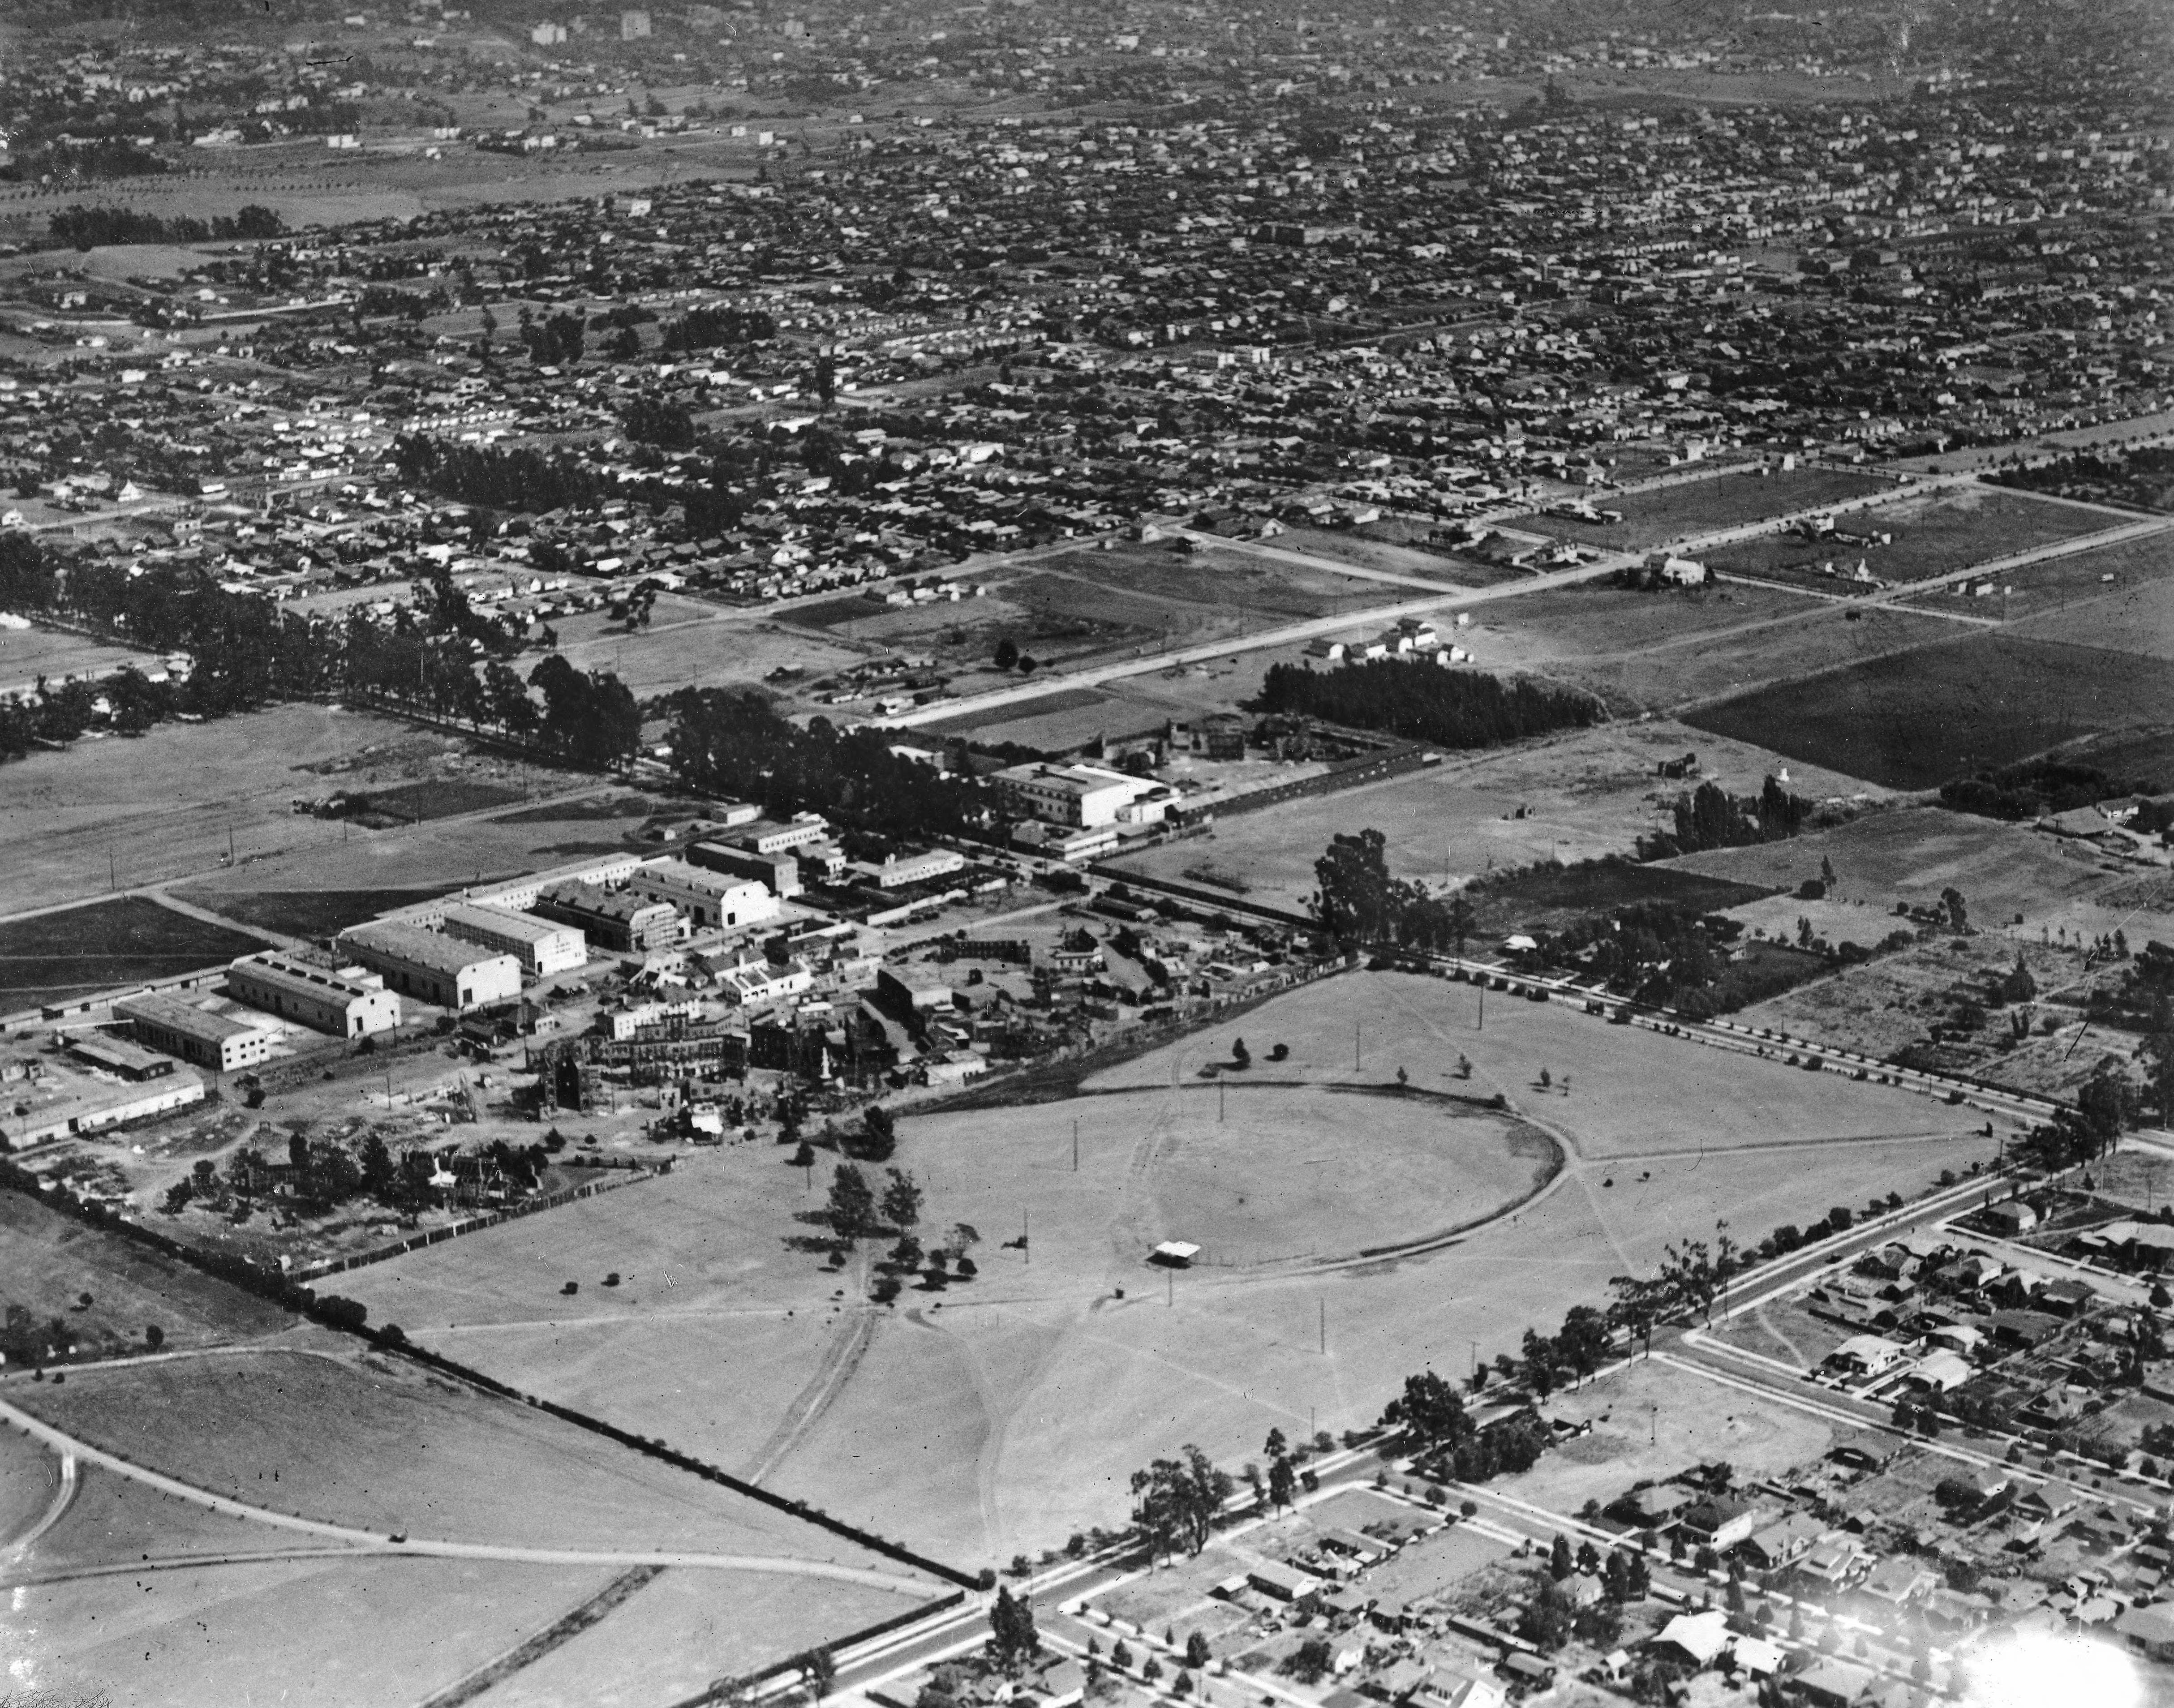 Aerial view of Brunton Studio, and its surroundings, 1918